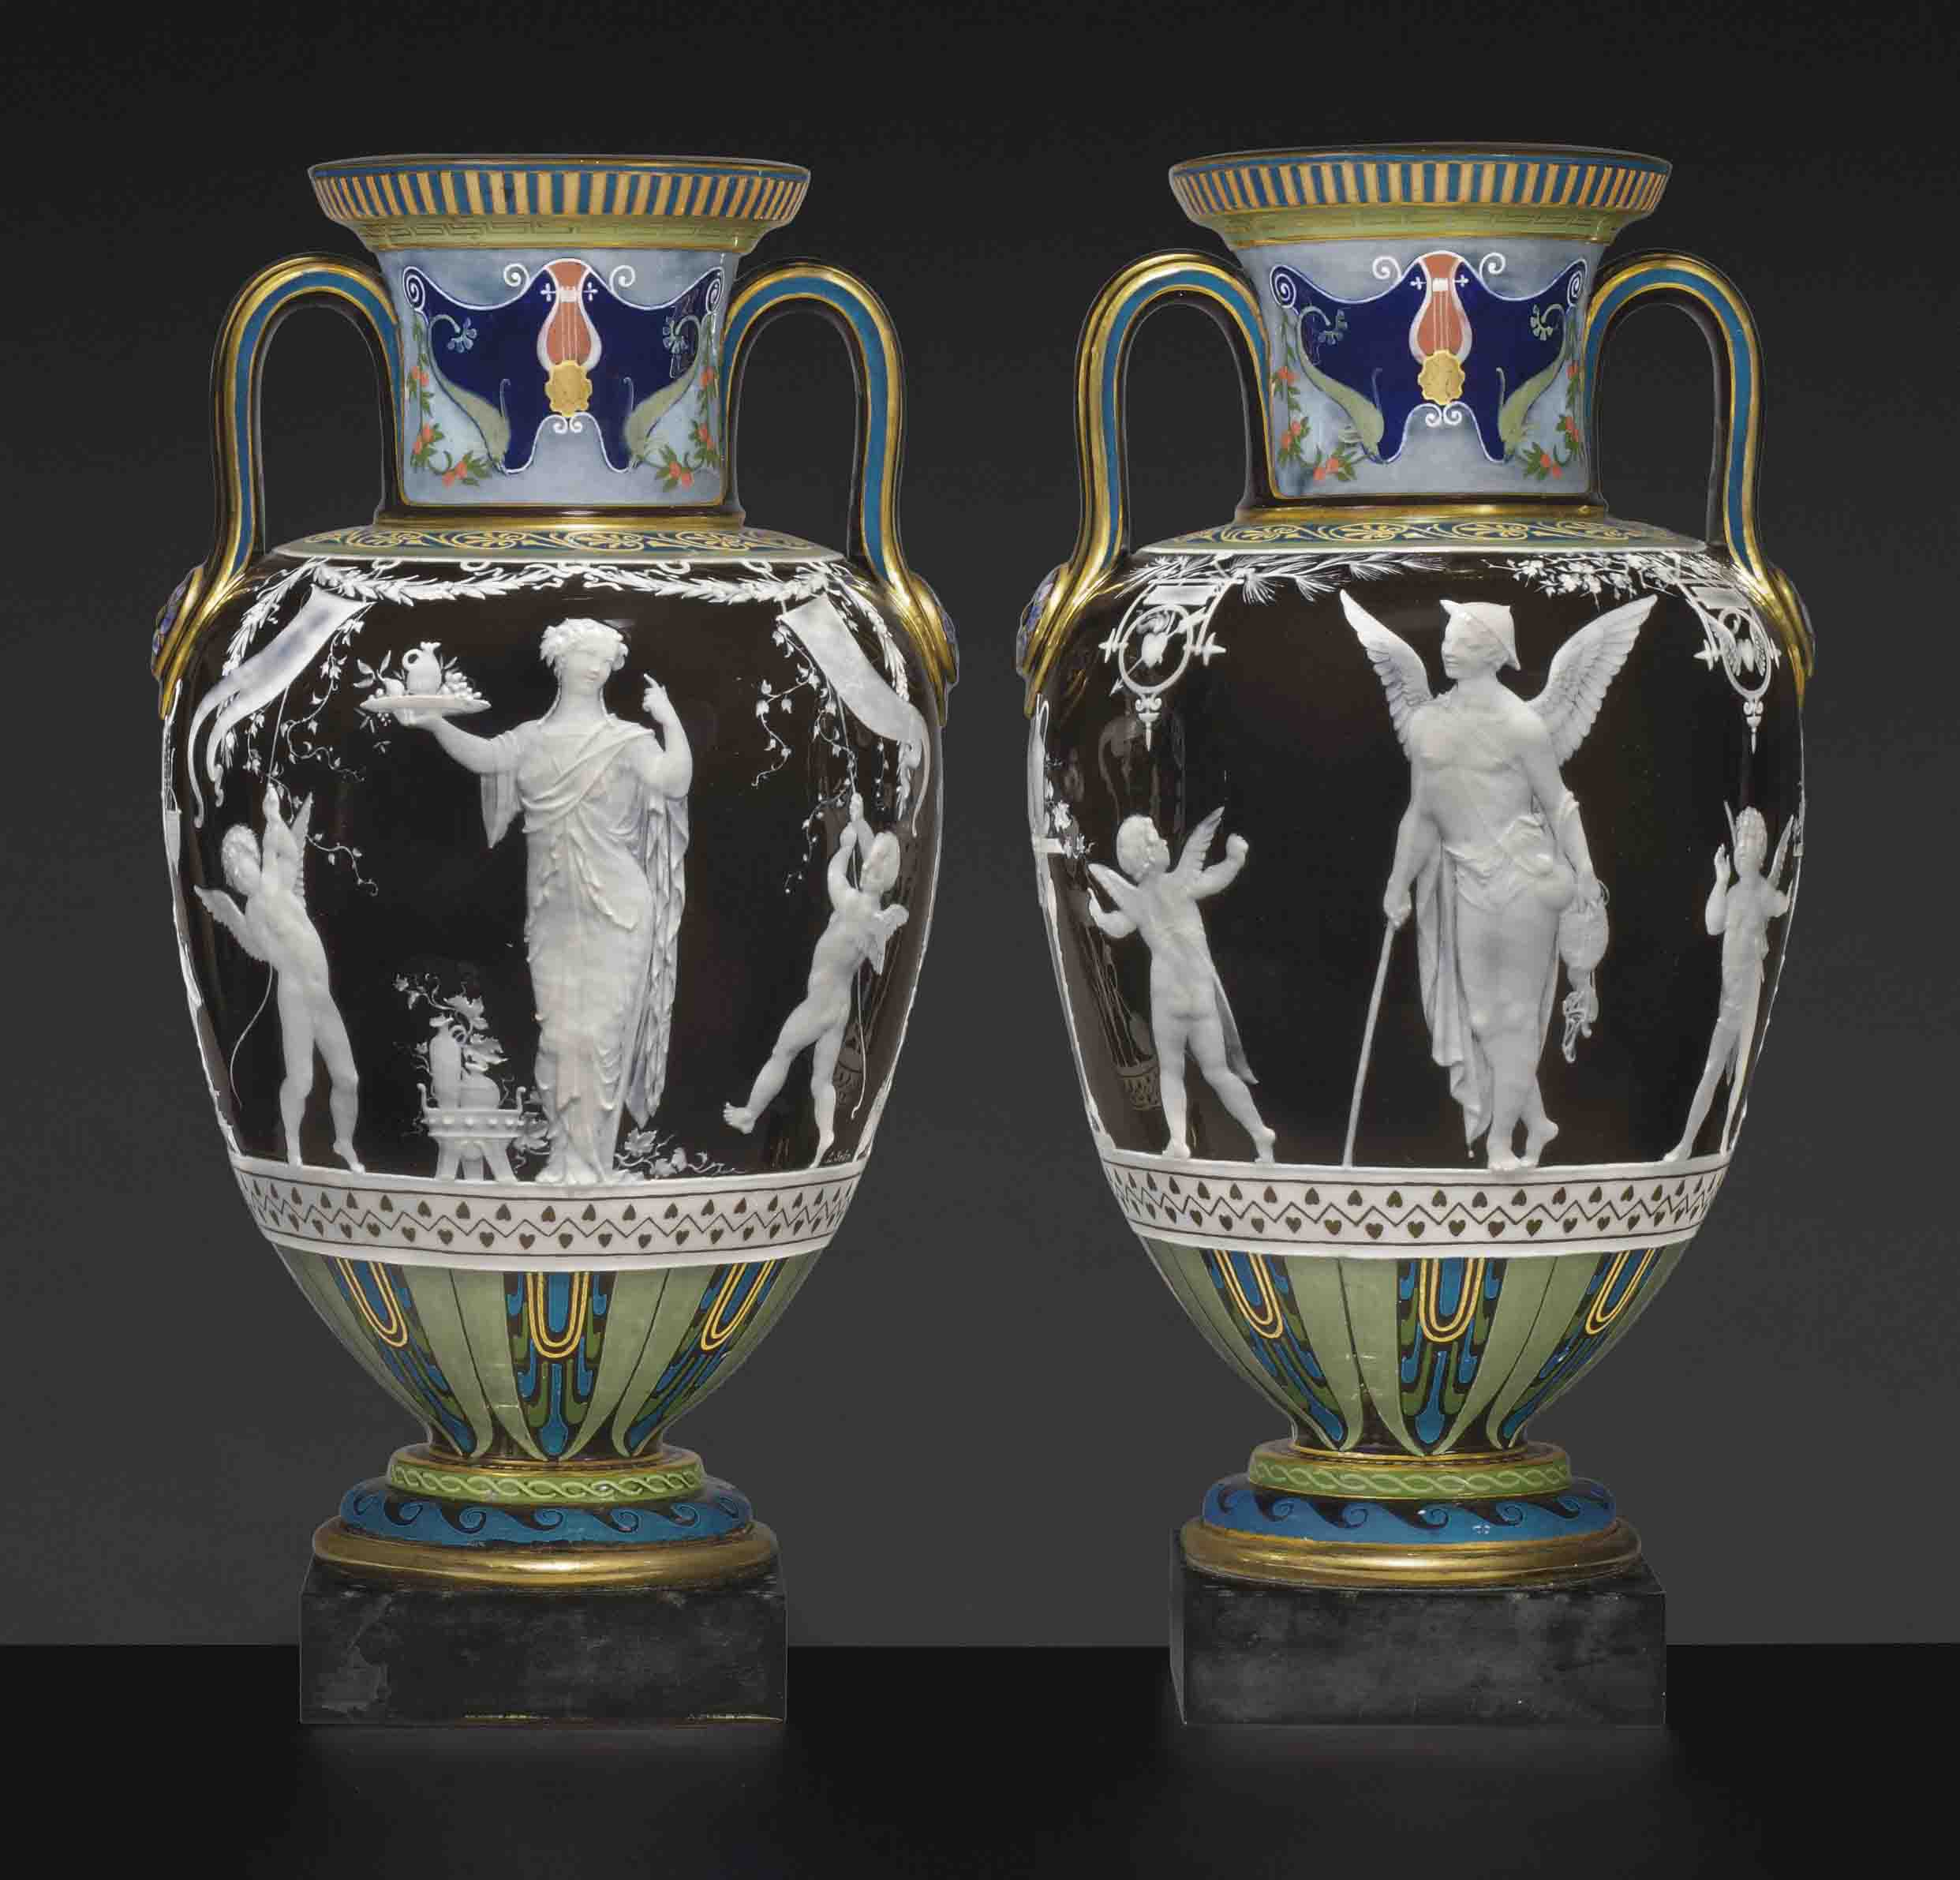 A PAIR OF MINTONS PATE-SUR-PATE BLACK AND CHOCOLATE-BROWN TWO-HANDLED VASES ON BLACK BELGIAN MARBLE BASES, 'VOYAGEUR & HOSTESSE'